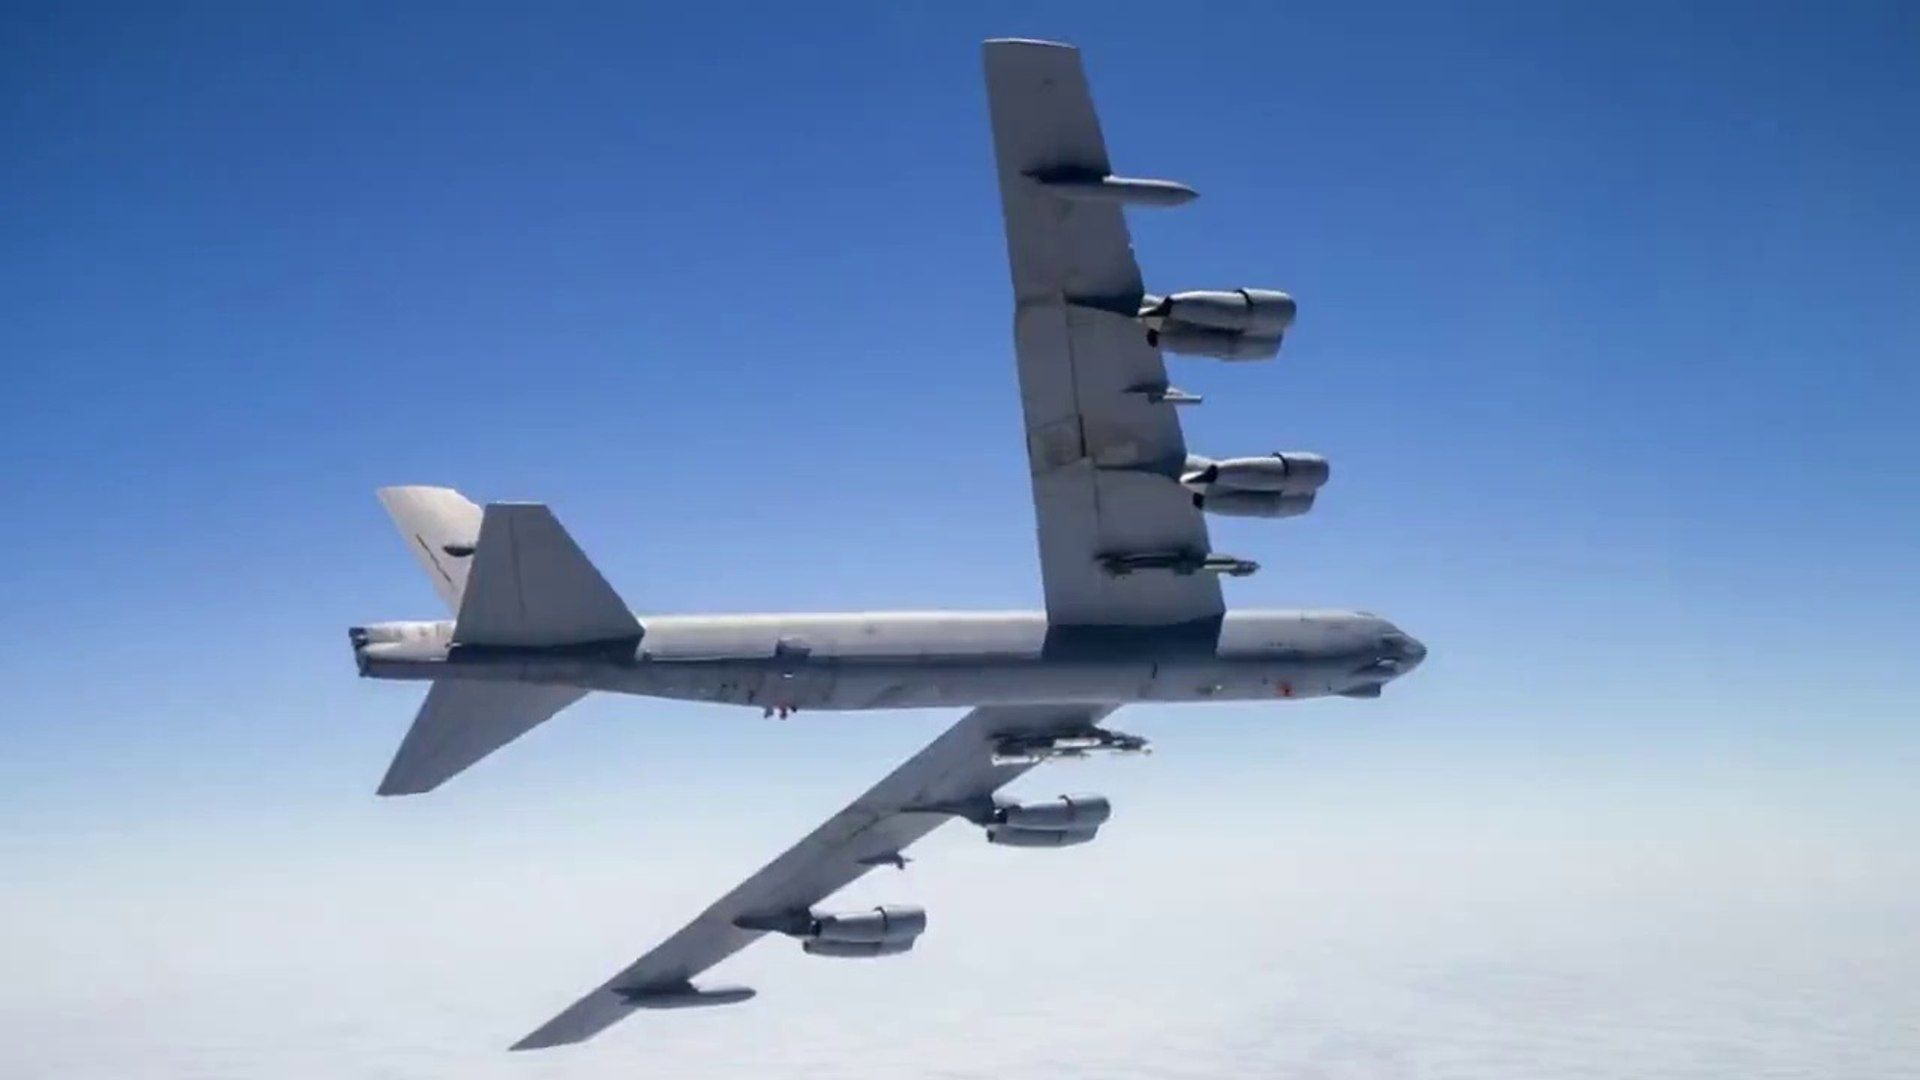 WAR-IN THE SKY: Su-27 Fighter Jets Shadow U.S. NUCLEAR-CAPABLE B-52H Bomber Near Russian Border